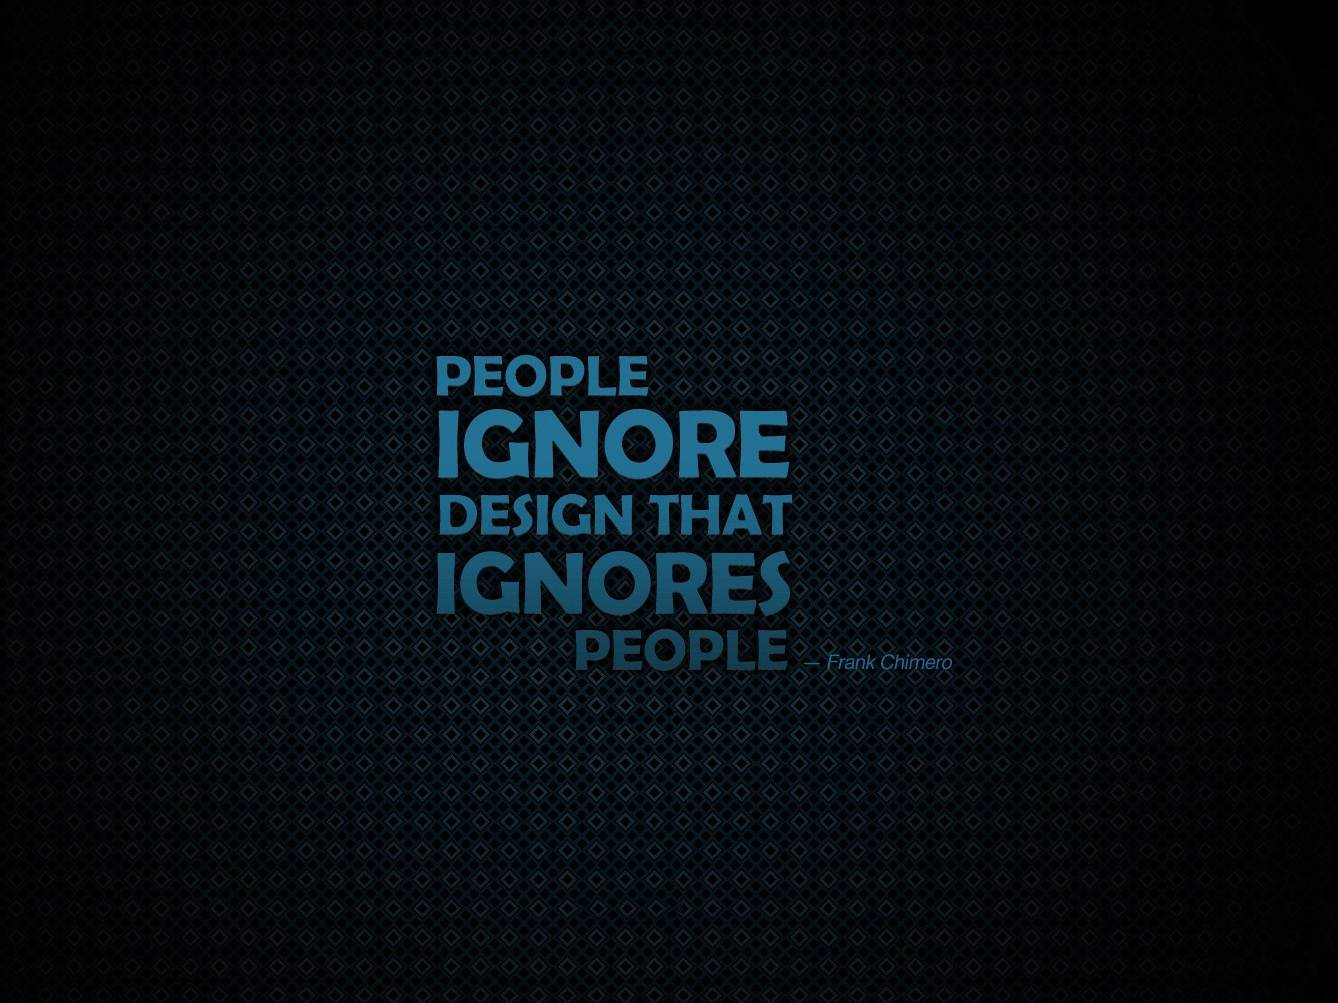 People Ignore